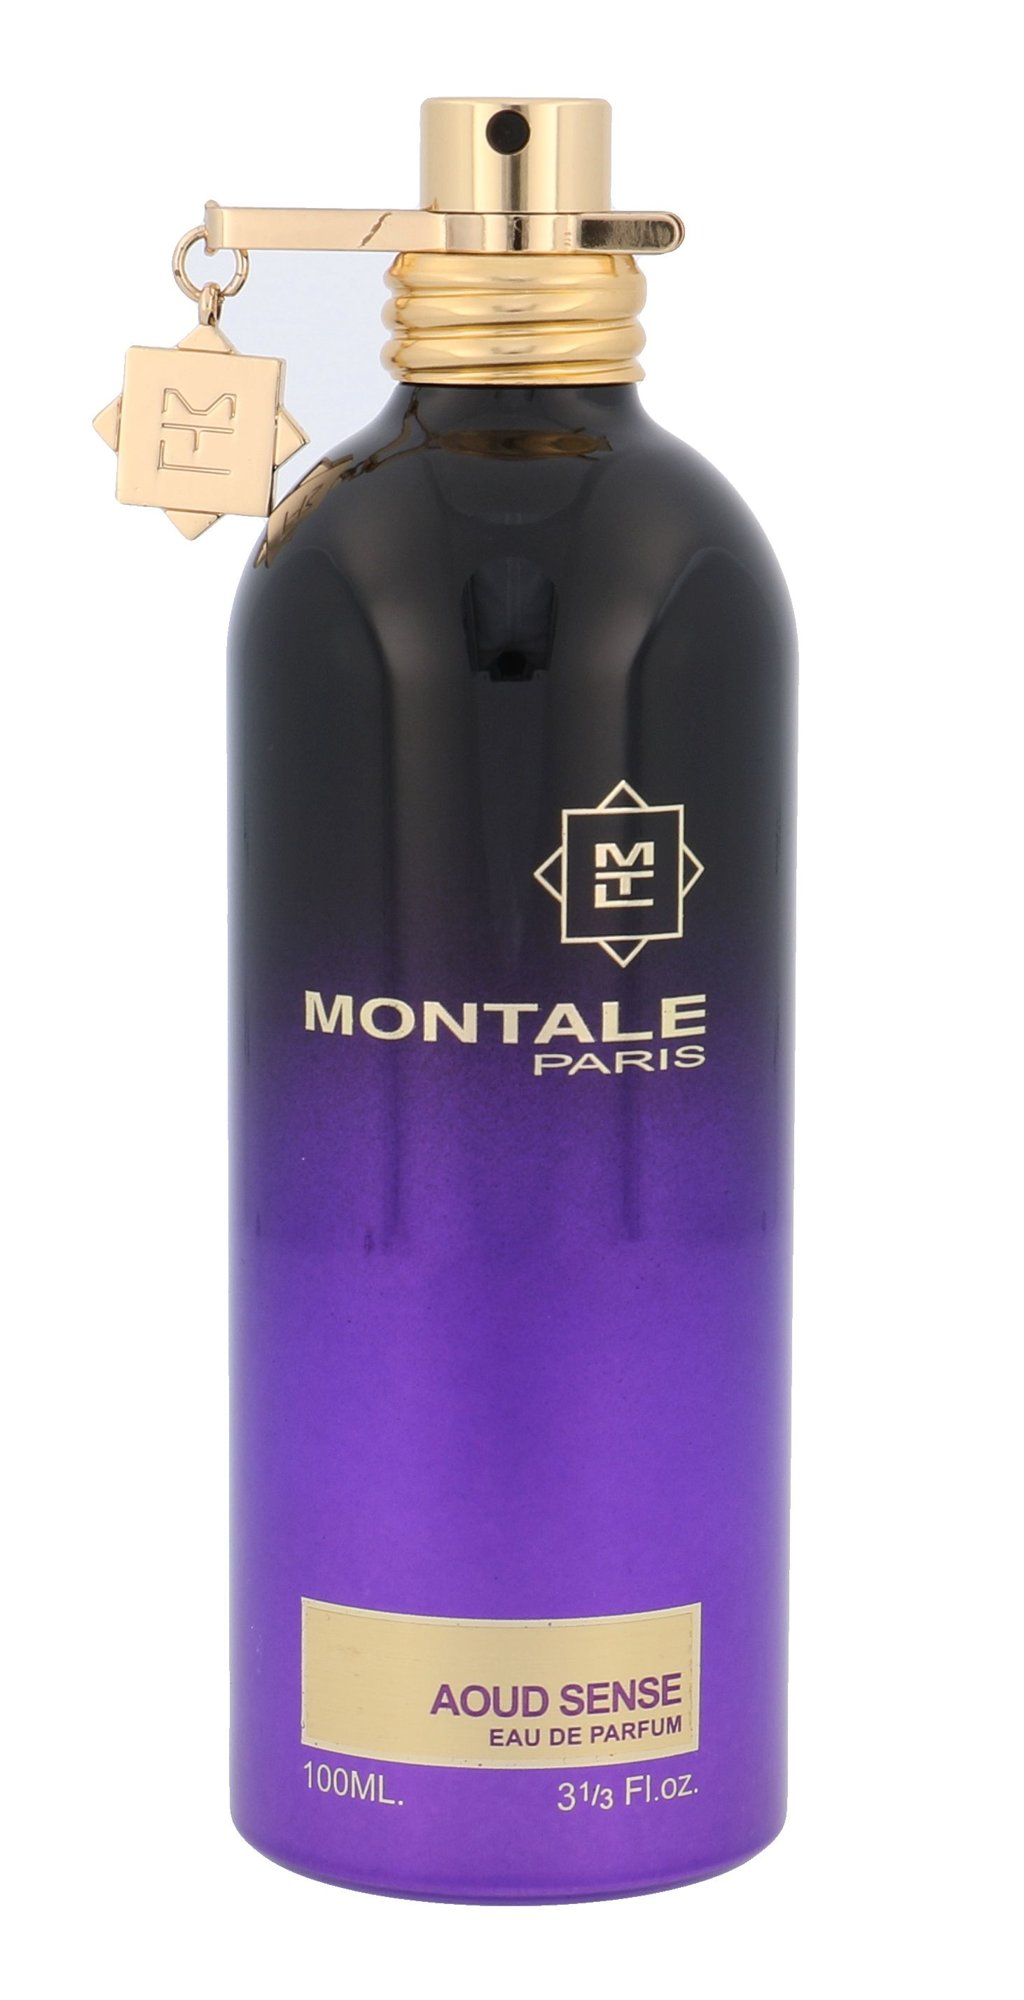 Montale Paris Aoud Sense EDP 100ml